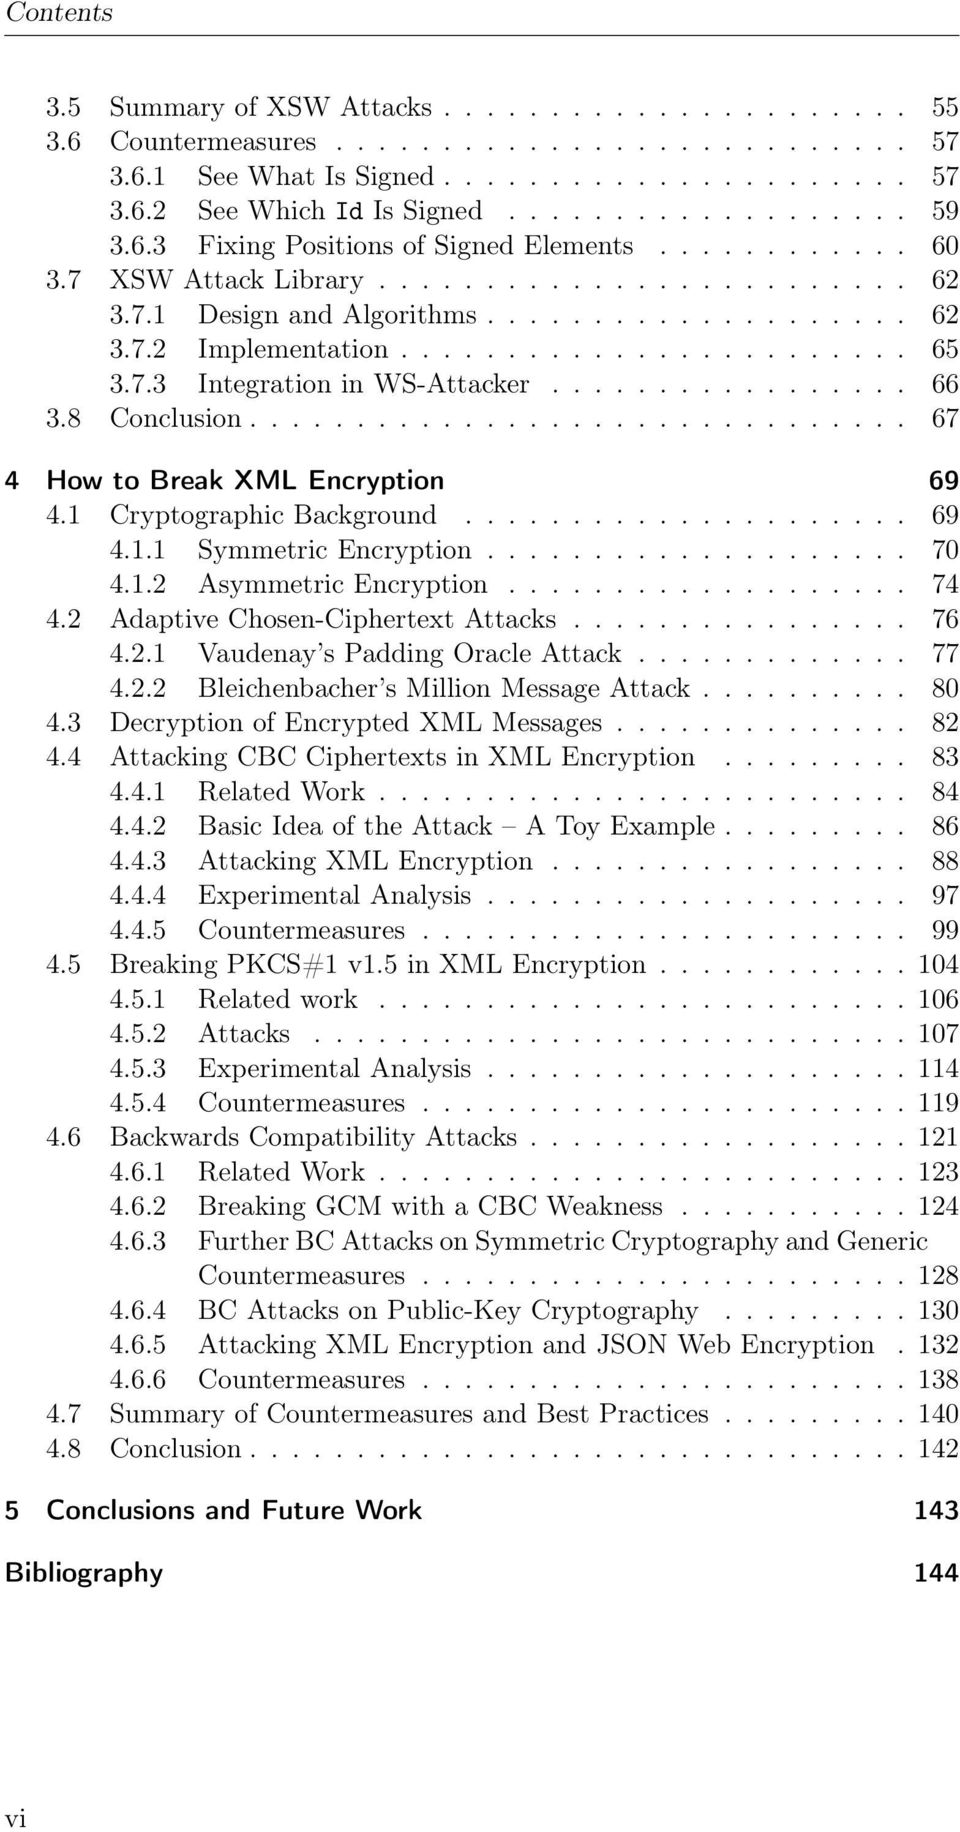 7.3 Integration in WS-Attacker................. 66 3.8 Conclusion............................... 67 4 How to Break XML Encryption 69 4.1 Cryptographic Background..................... 69 4.1.1 Symmetric Encryption.